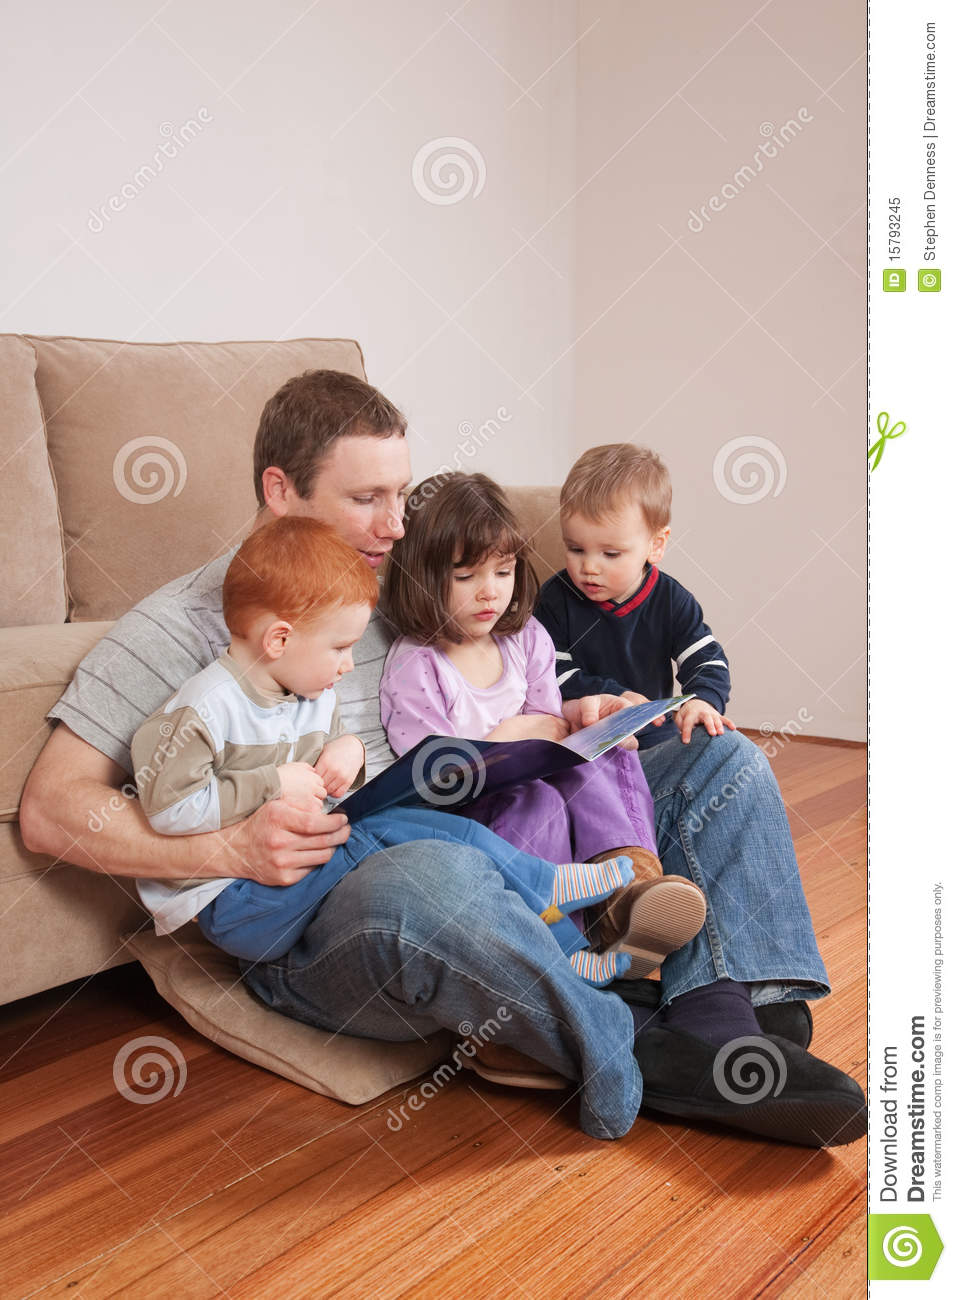 Dad Reading Story To Kids Royalty Free Stock Photo - Image: 15793245